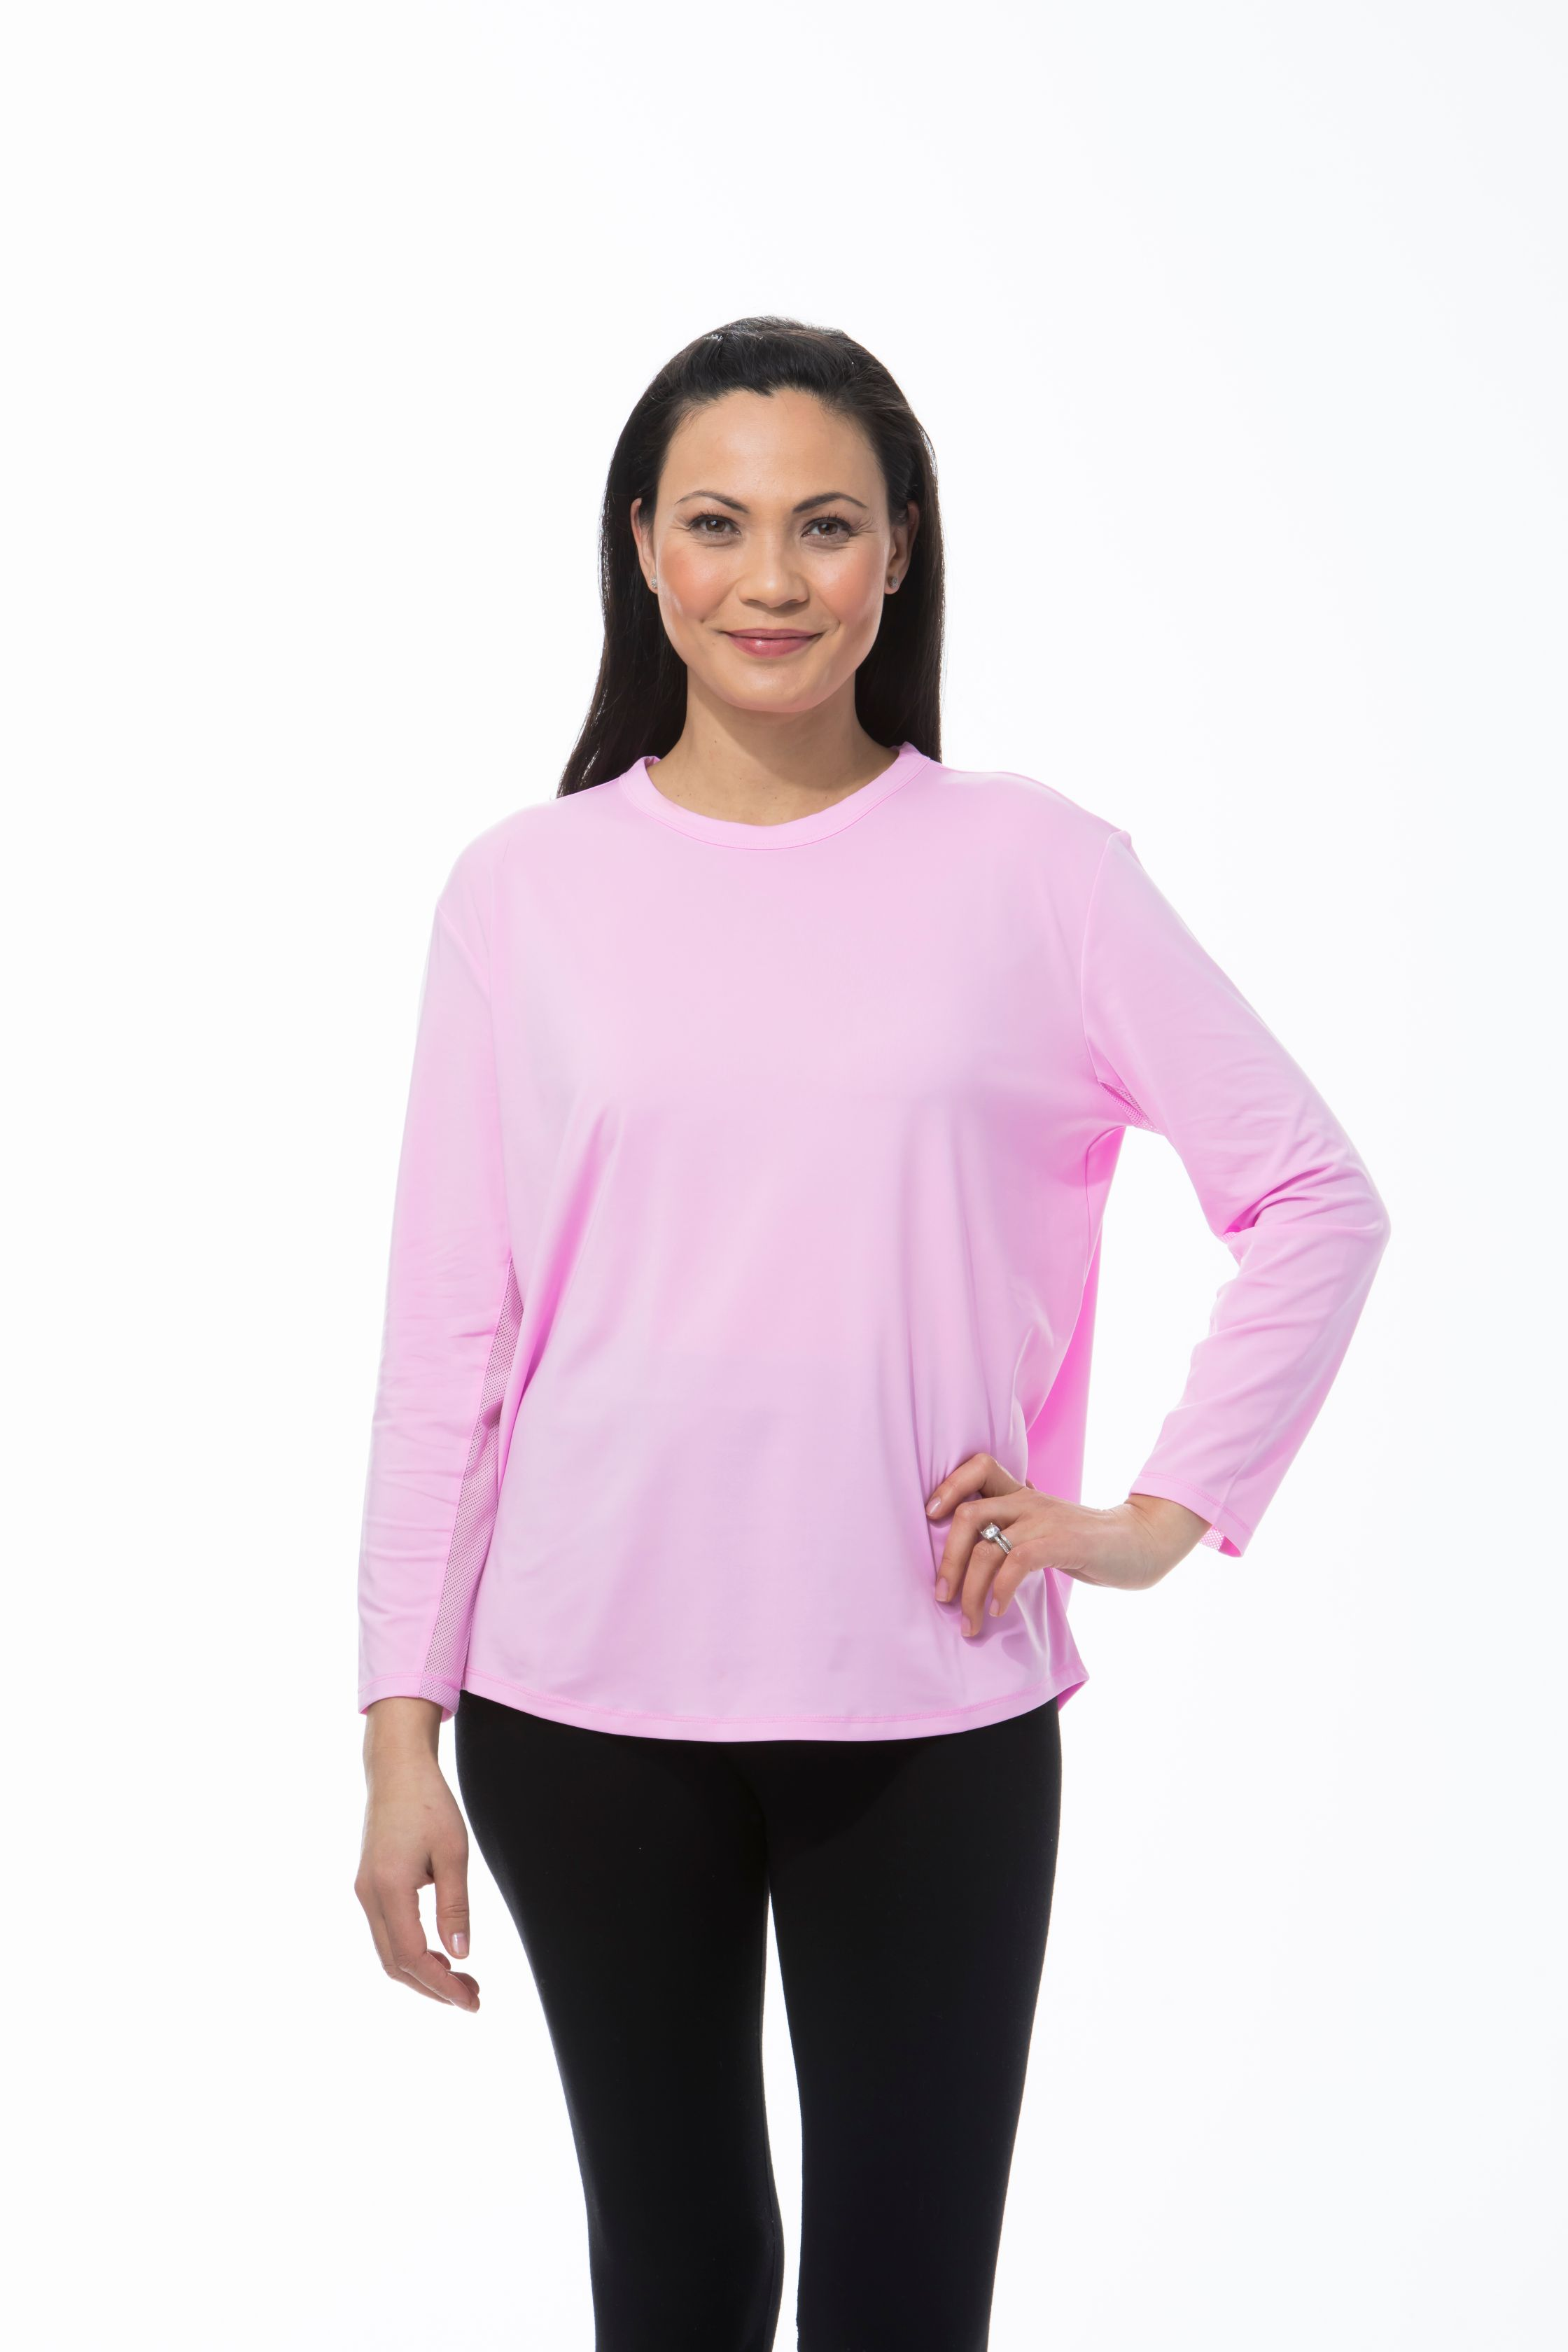 900730 Sunglow Relaxed Tee. Pink